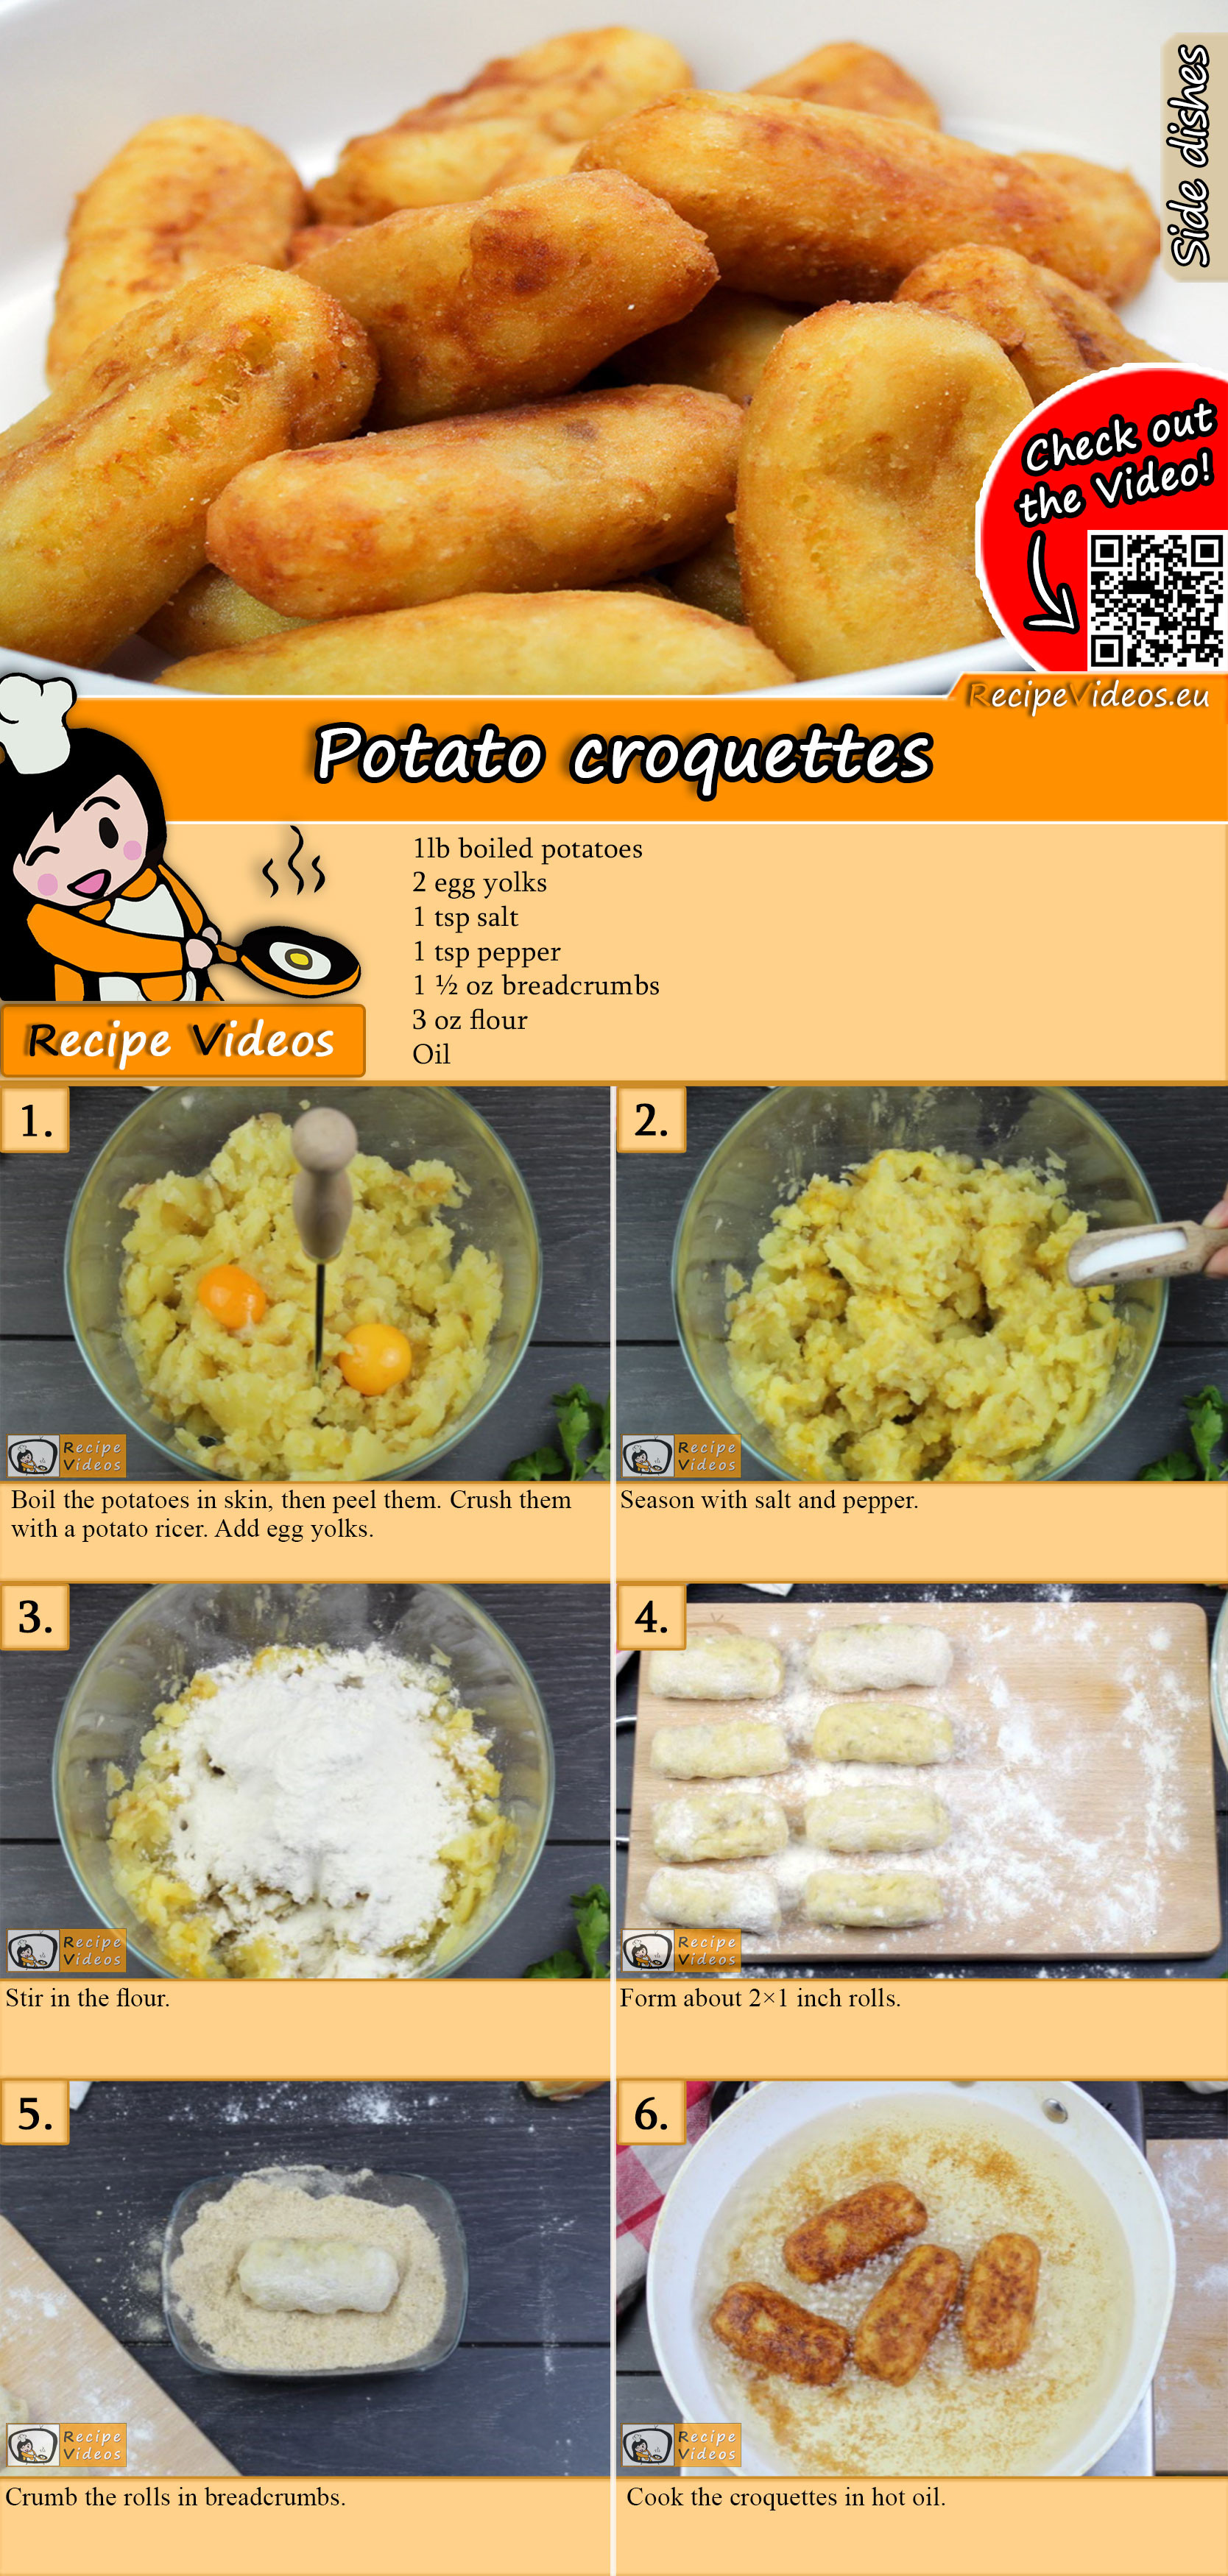 Potato croquettes recipe with video